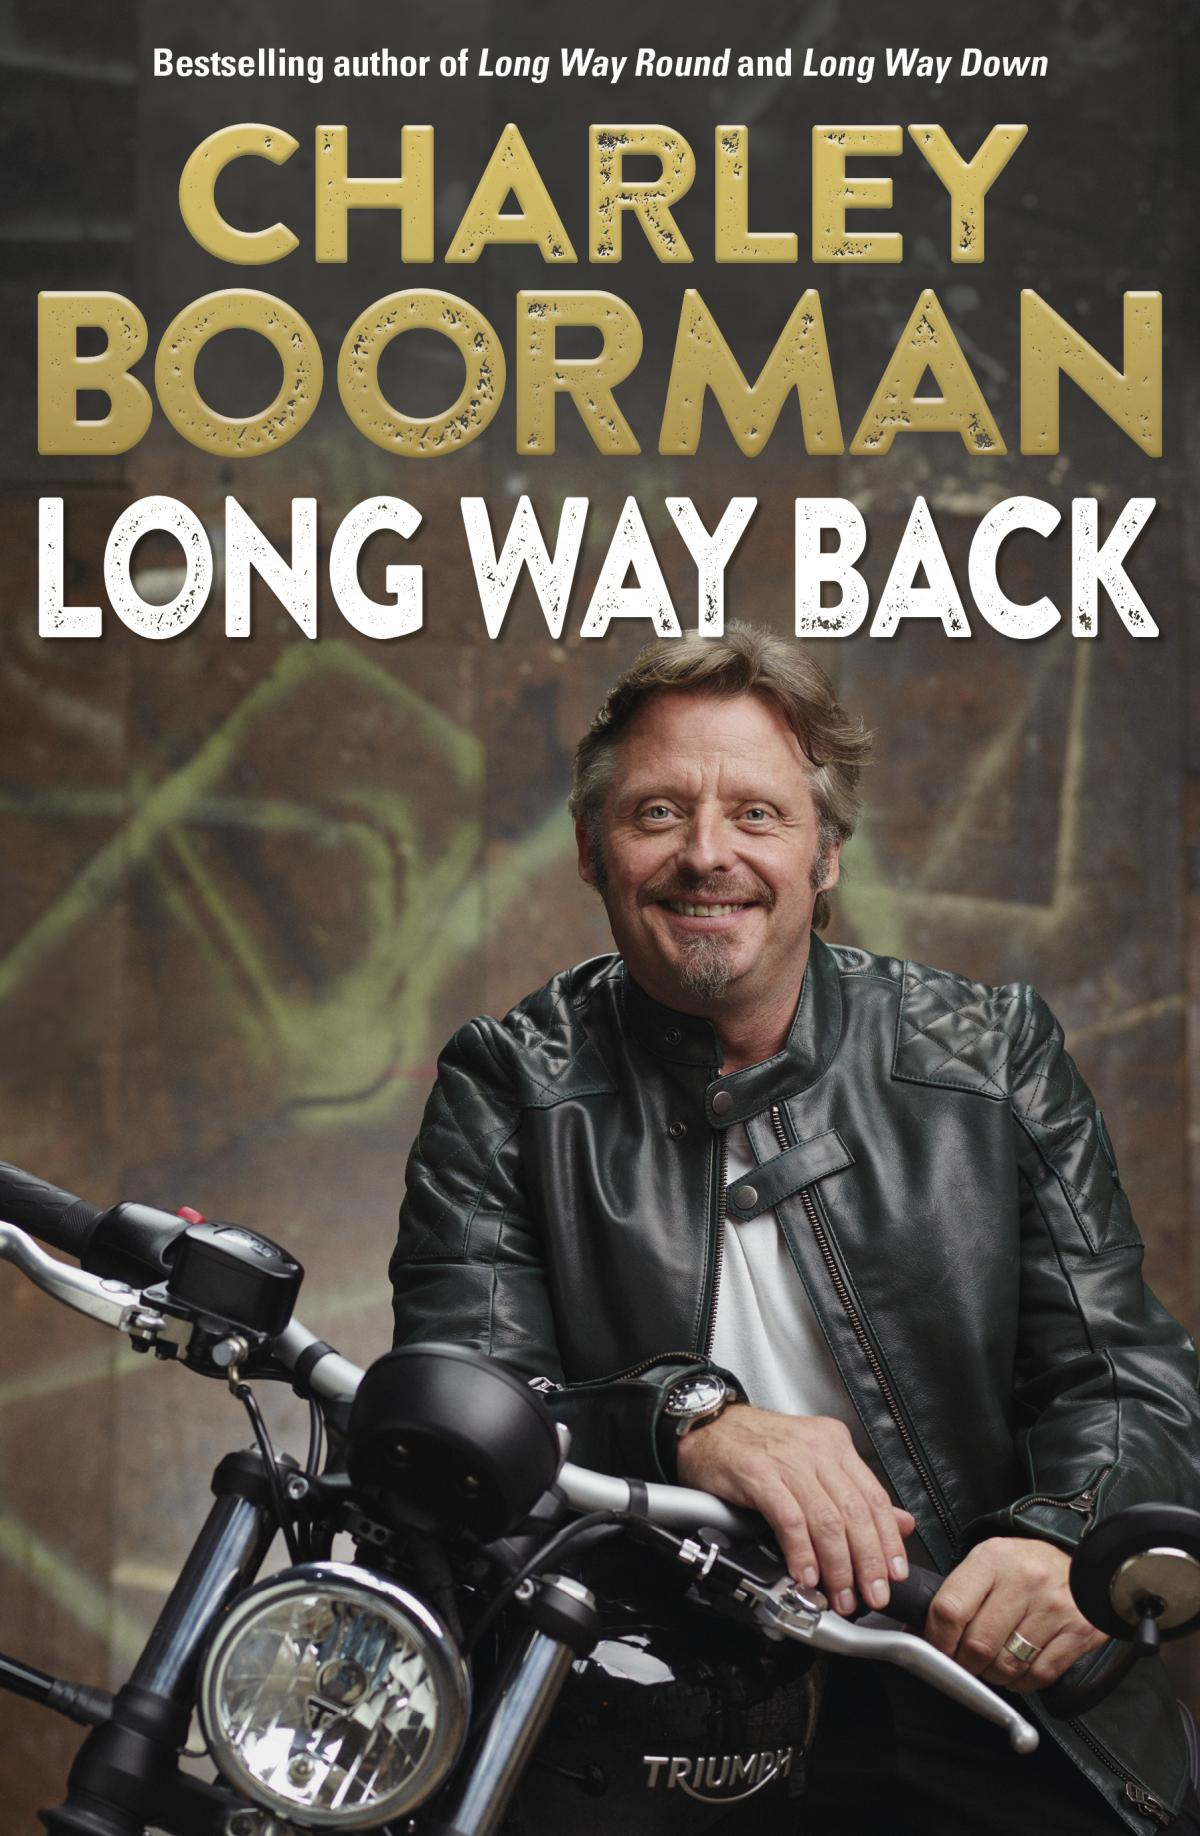 Charley Boorman pens new autobiography